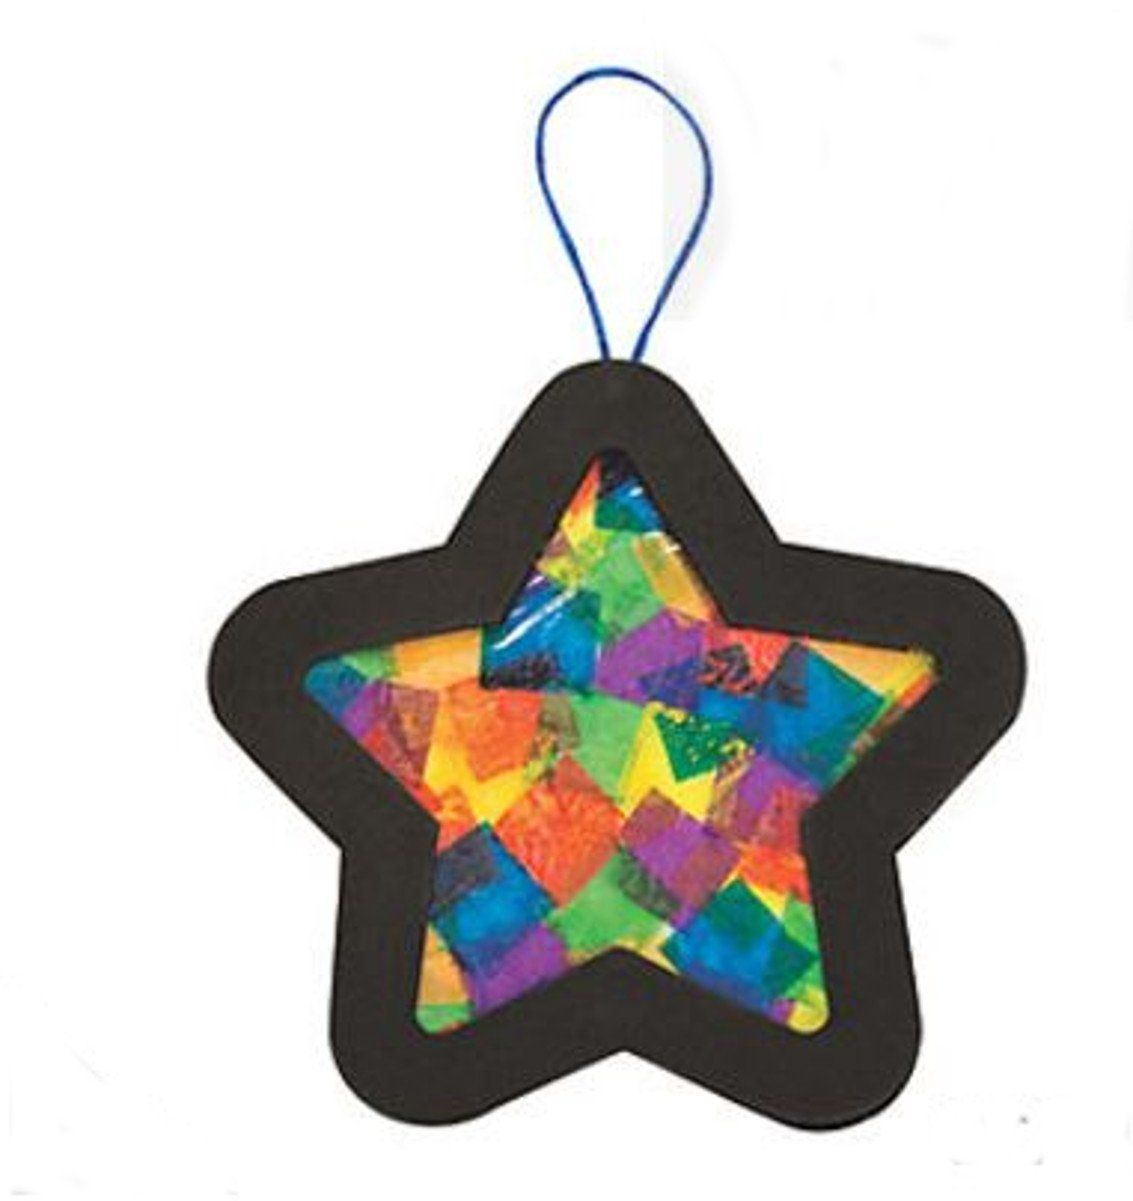 Tissue Paper Stained Glass Star Christmas Tree Ornament Craft Kits 12 Kits Ad In 2020 Ornament Crafts Handmade Christmas Decorations Christmas Tree Ornament Crafts